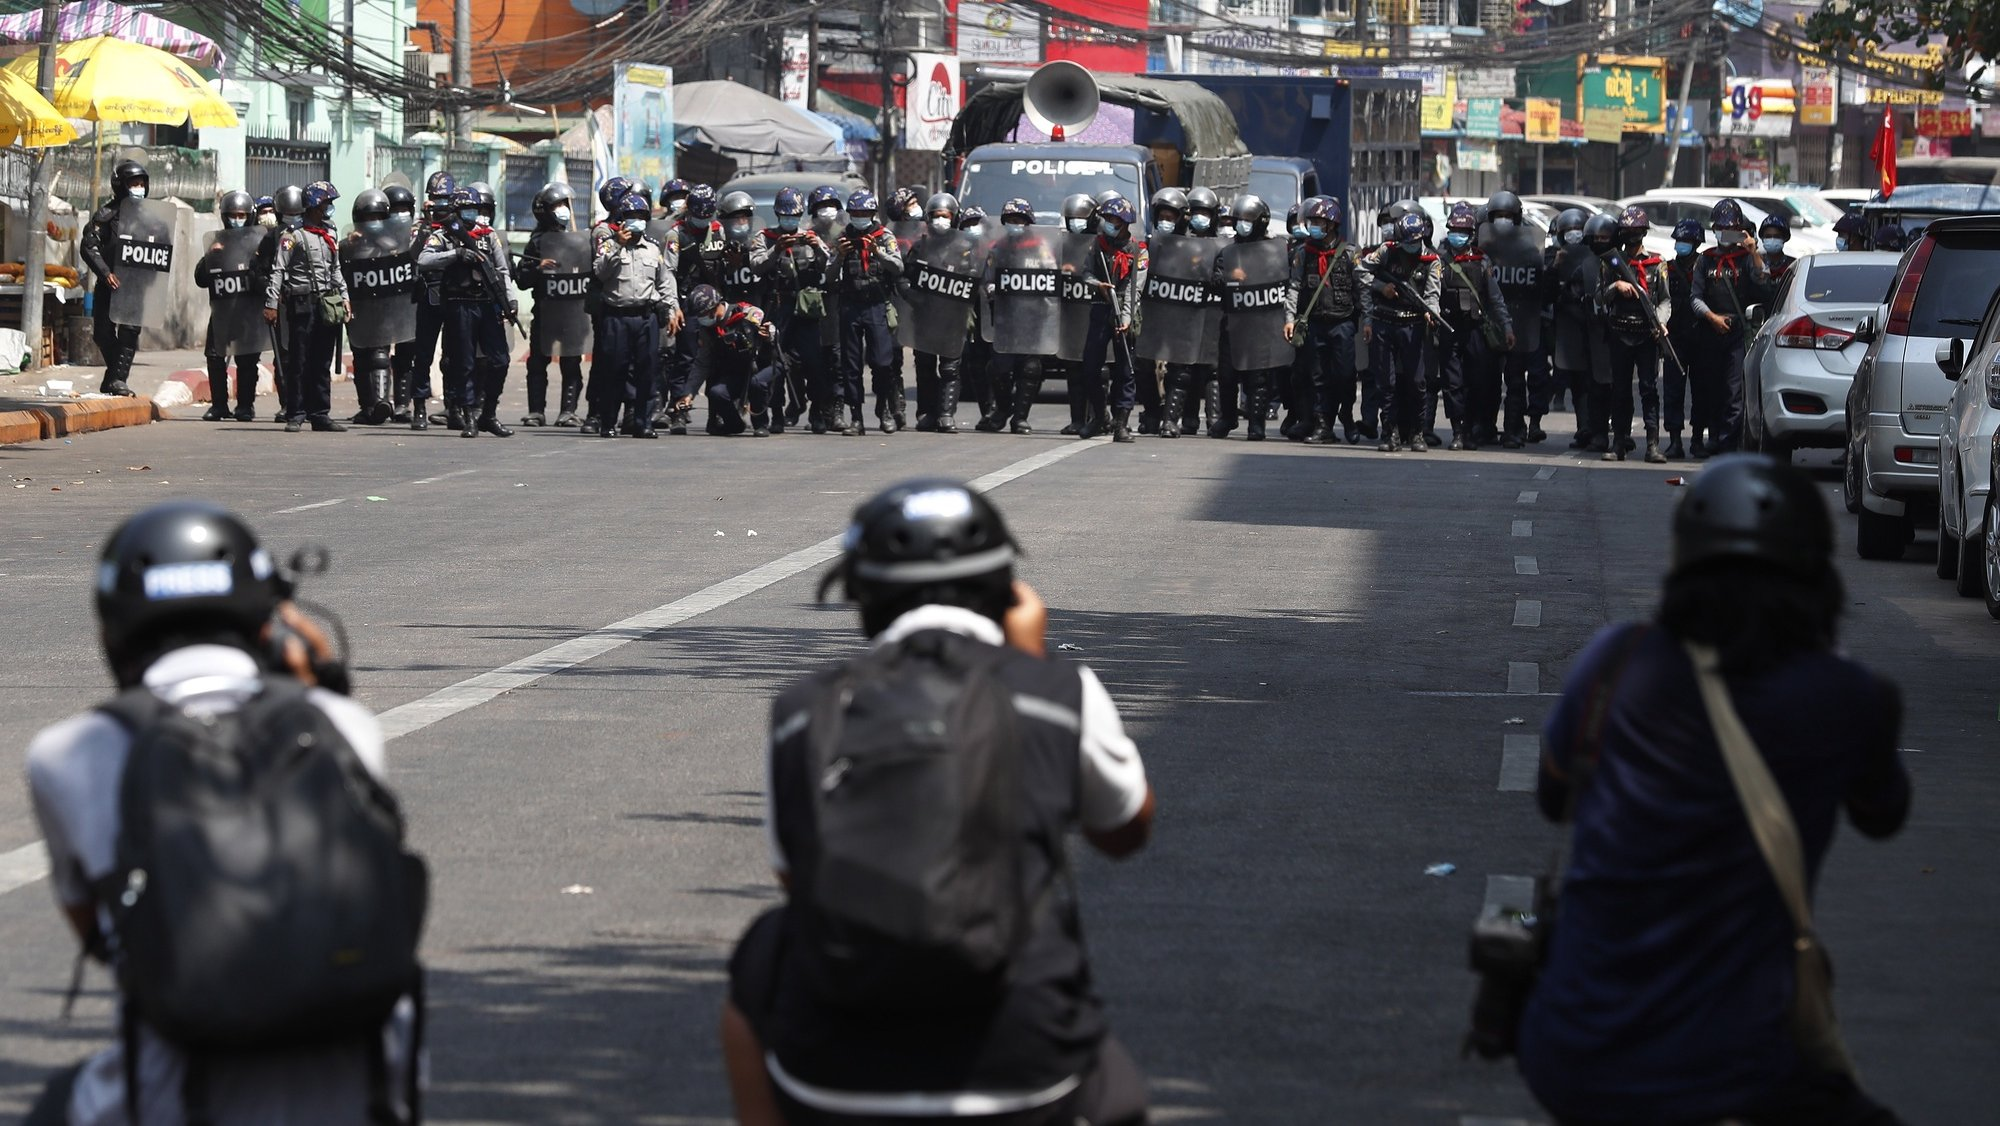 epa09037447 Riot police advance on a street as members of the press take photos during a protest against the military coup, in Yangon, Myanmar, 26 February 2021 Anti-coup protests continue in Myanmar amid regional diplomatic attempts to reach a resolution to weeks of unrest caused by the military coup.  EPA/NYEIN CHAN NAING